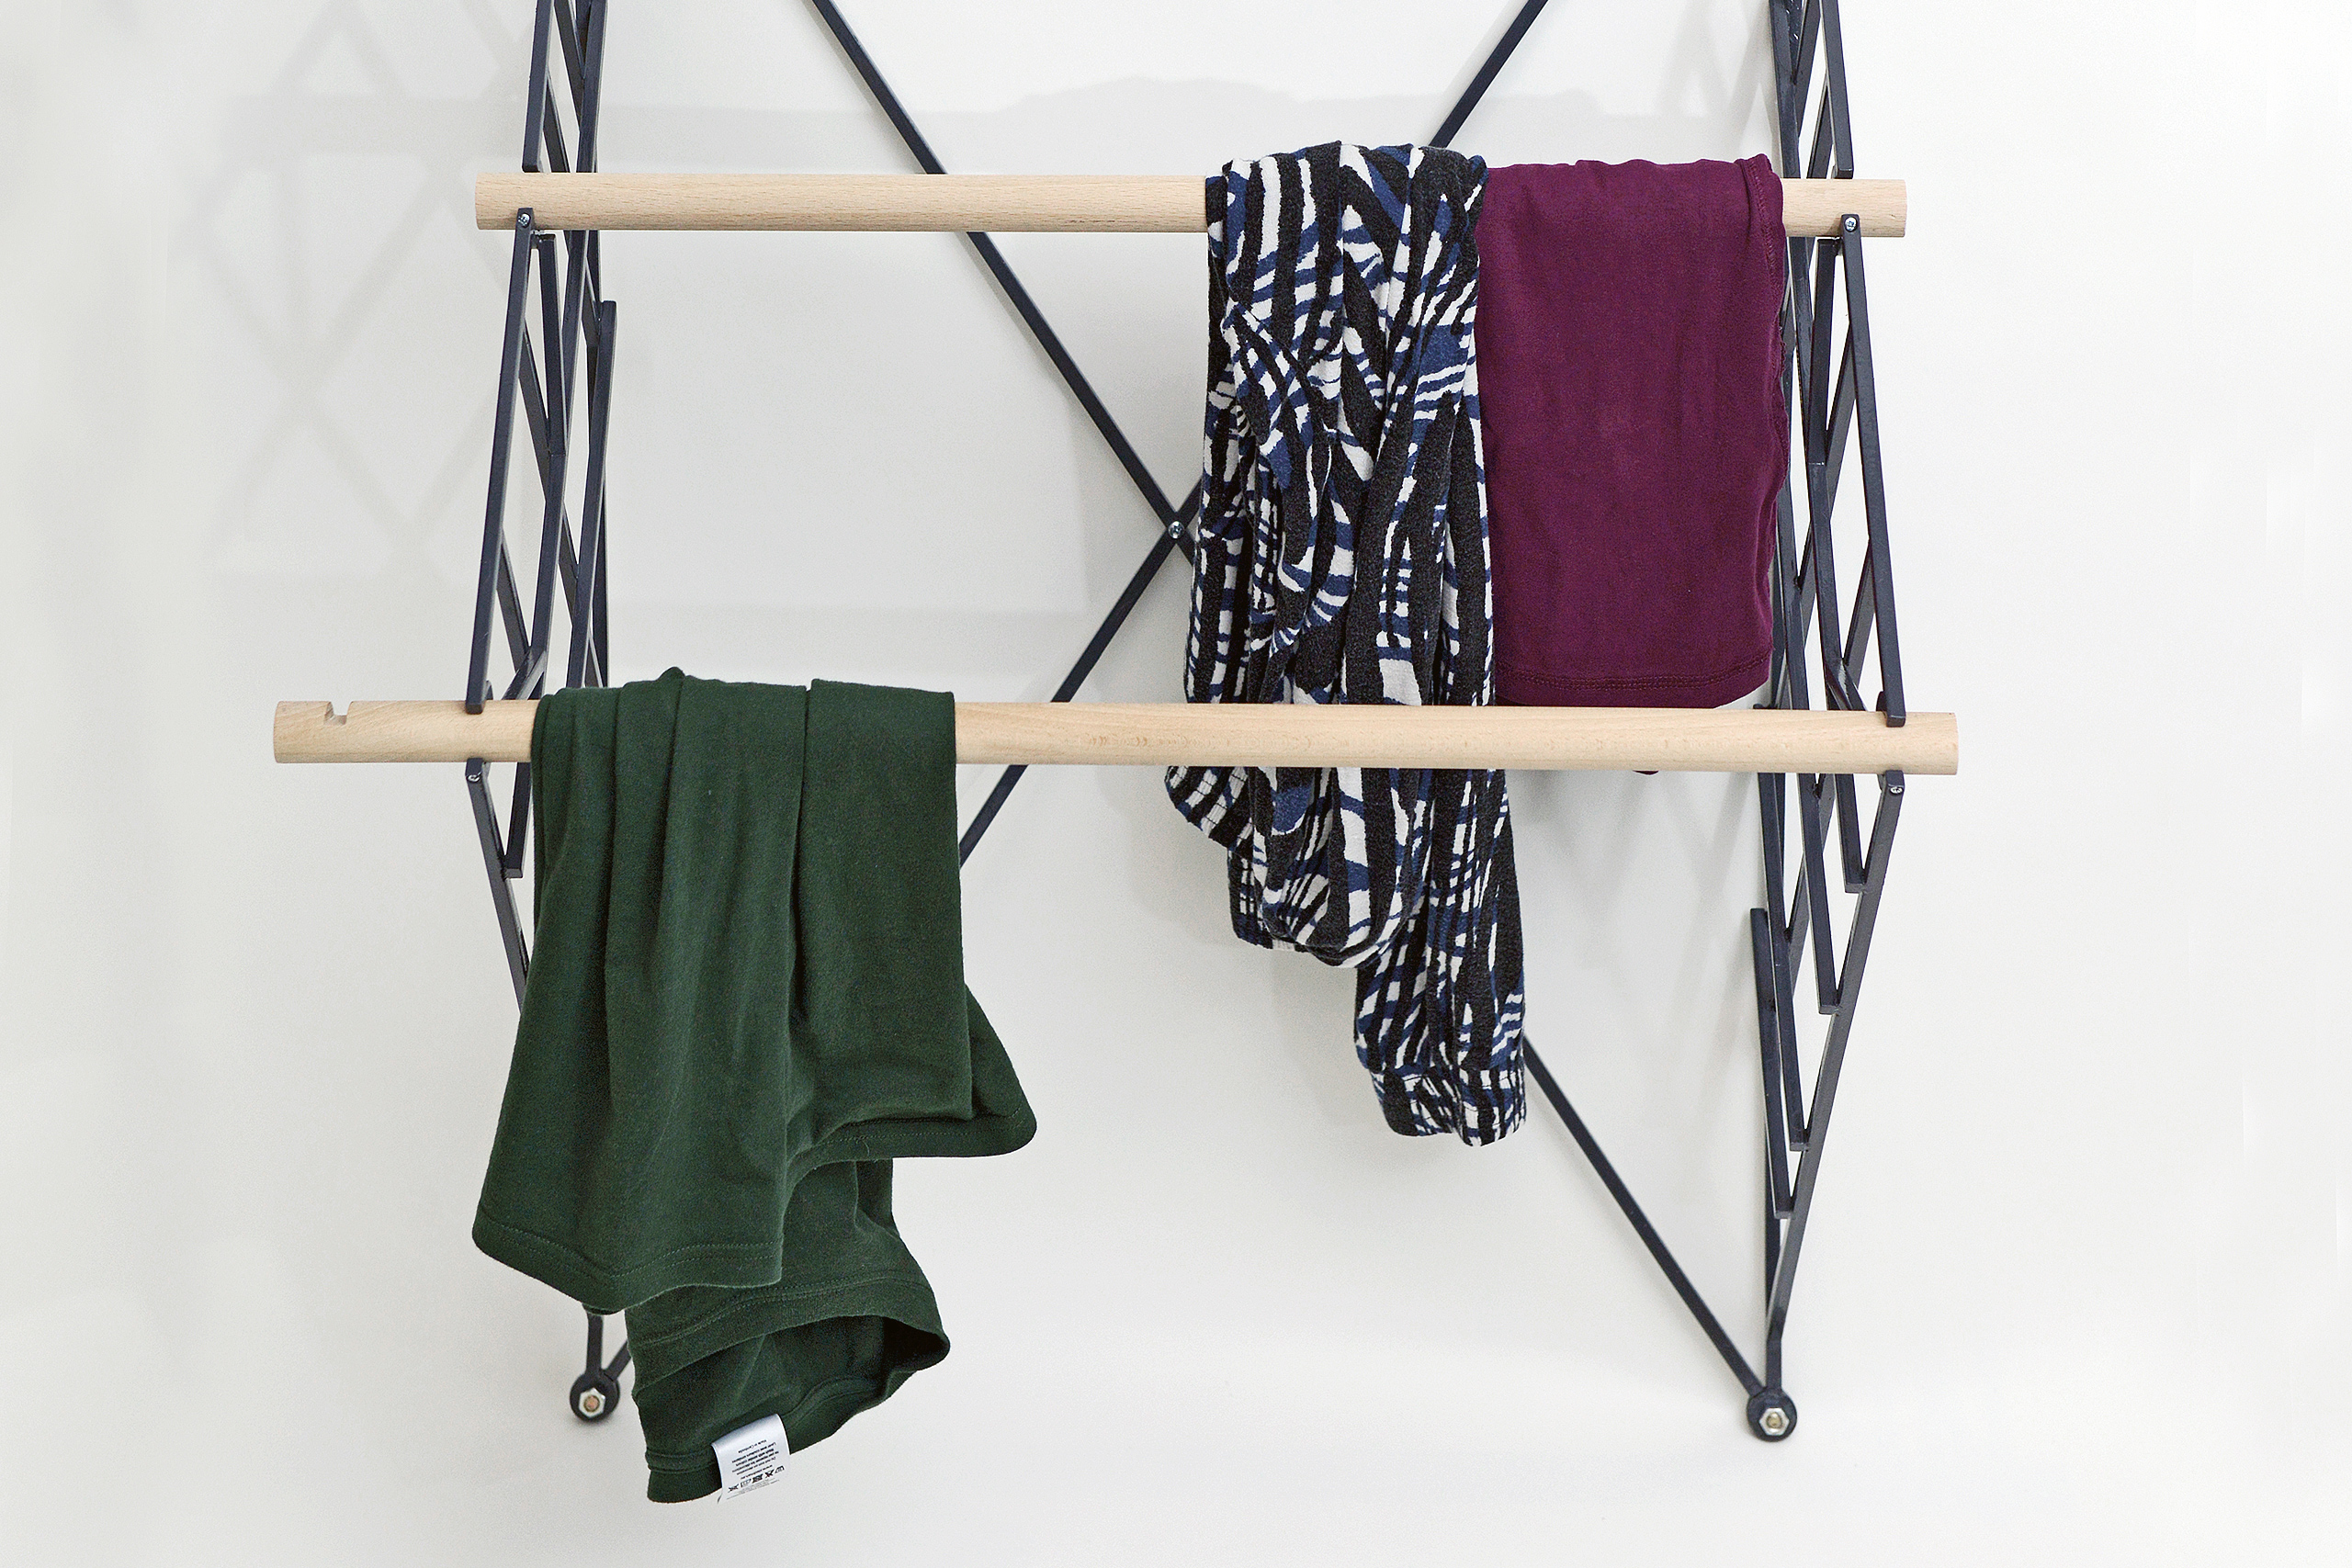 Hanging Wardrobe – Anika Bode | Photo: Anika Bode